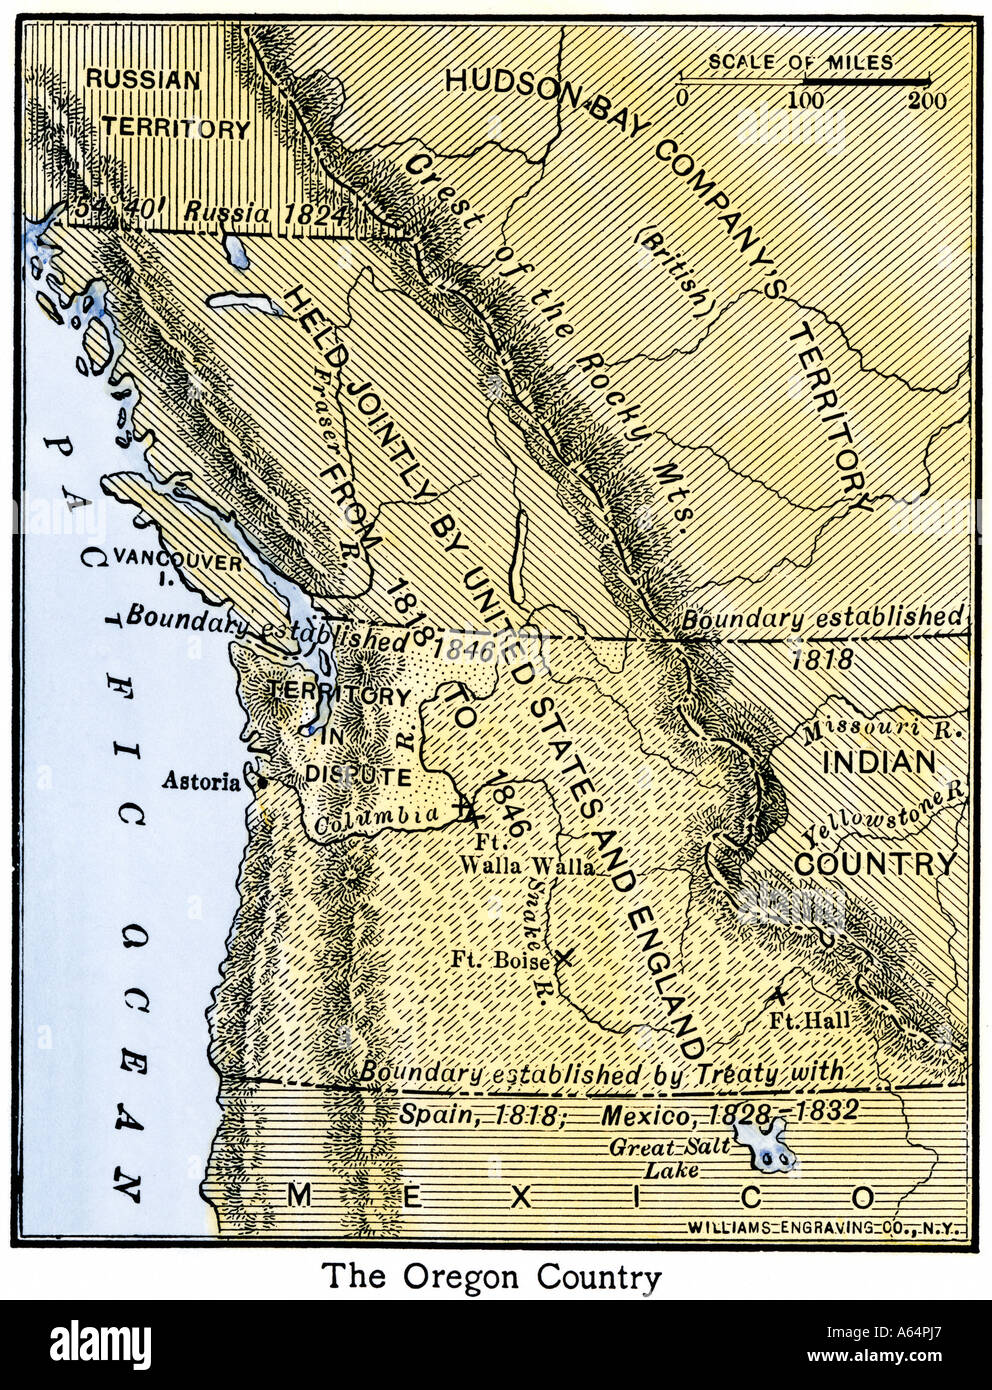 Map of Oregon Territory showing boundary of US with British Canada under dispute until 1846. Hand-colored woodcut - Stock Image